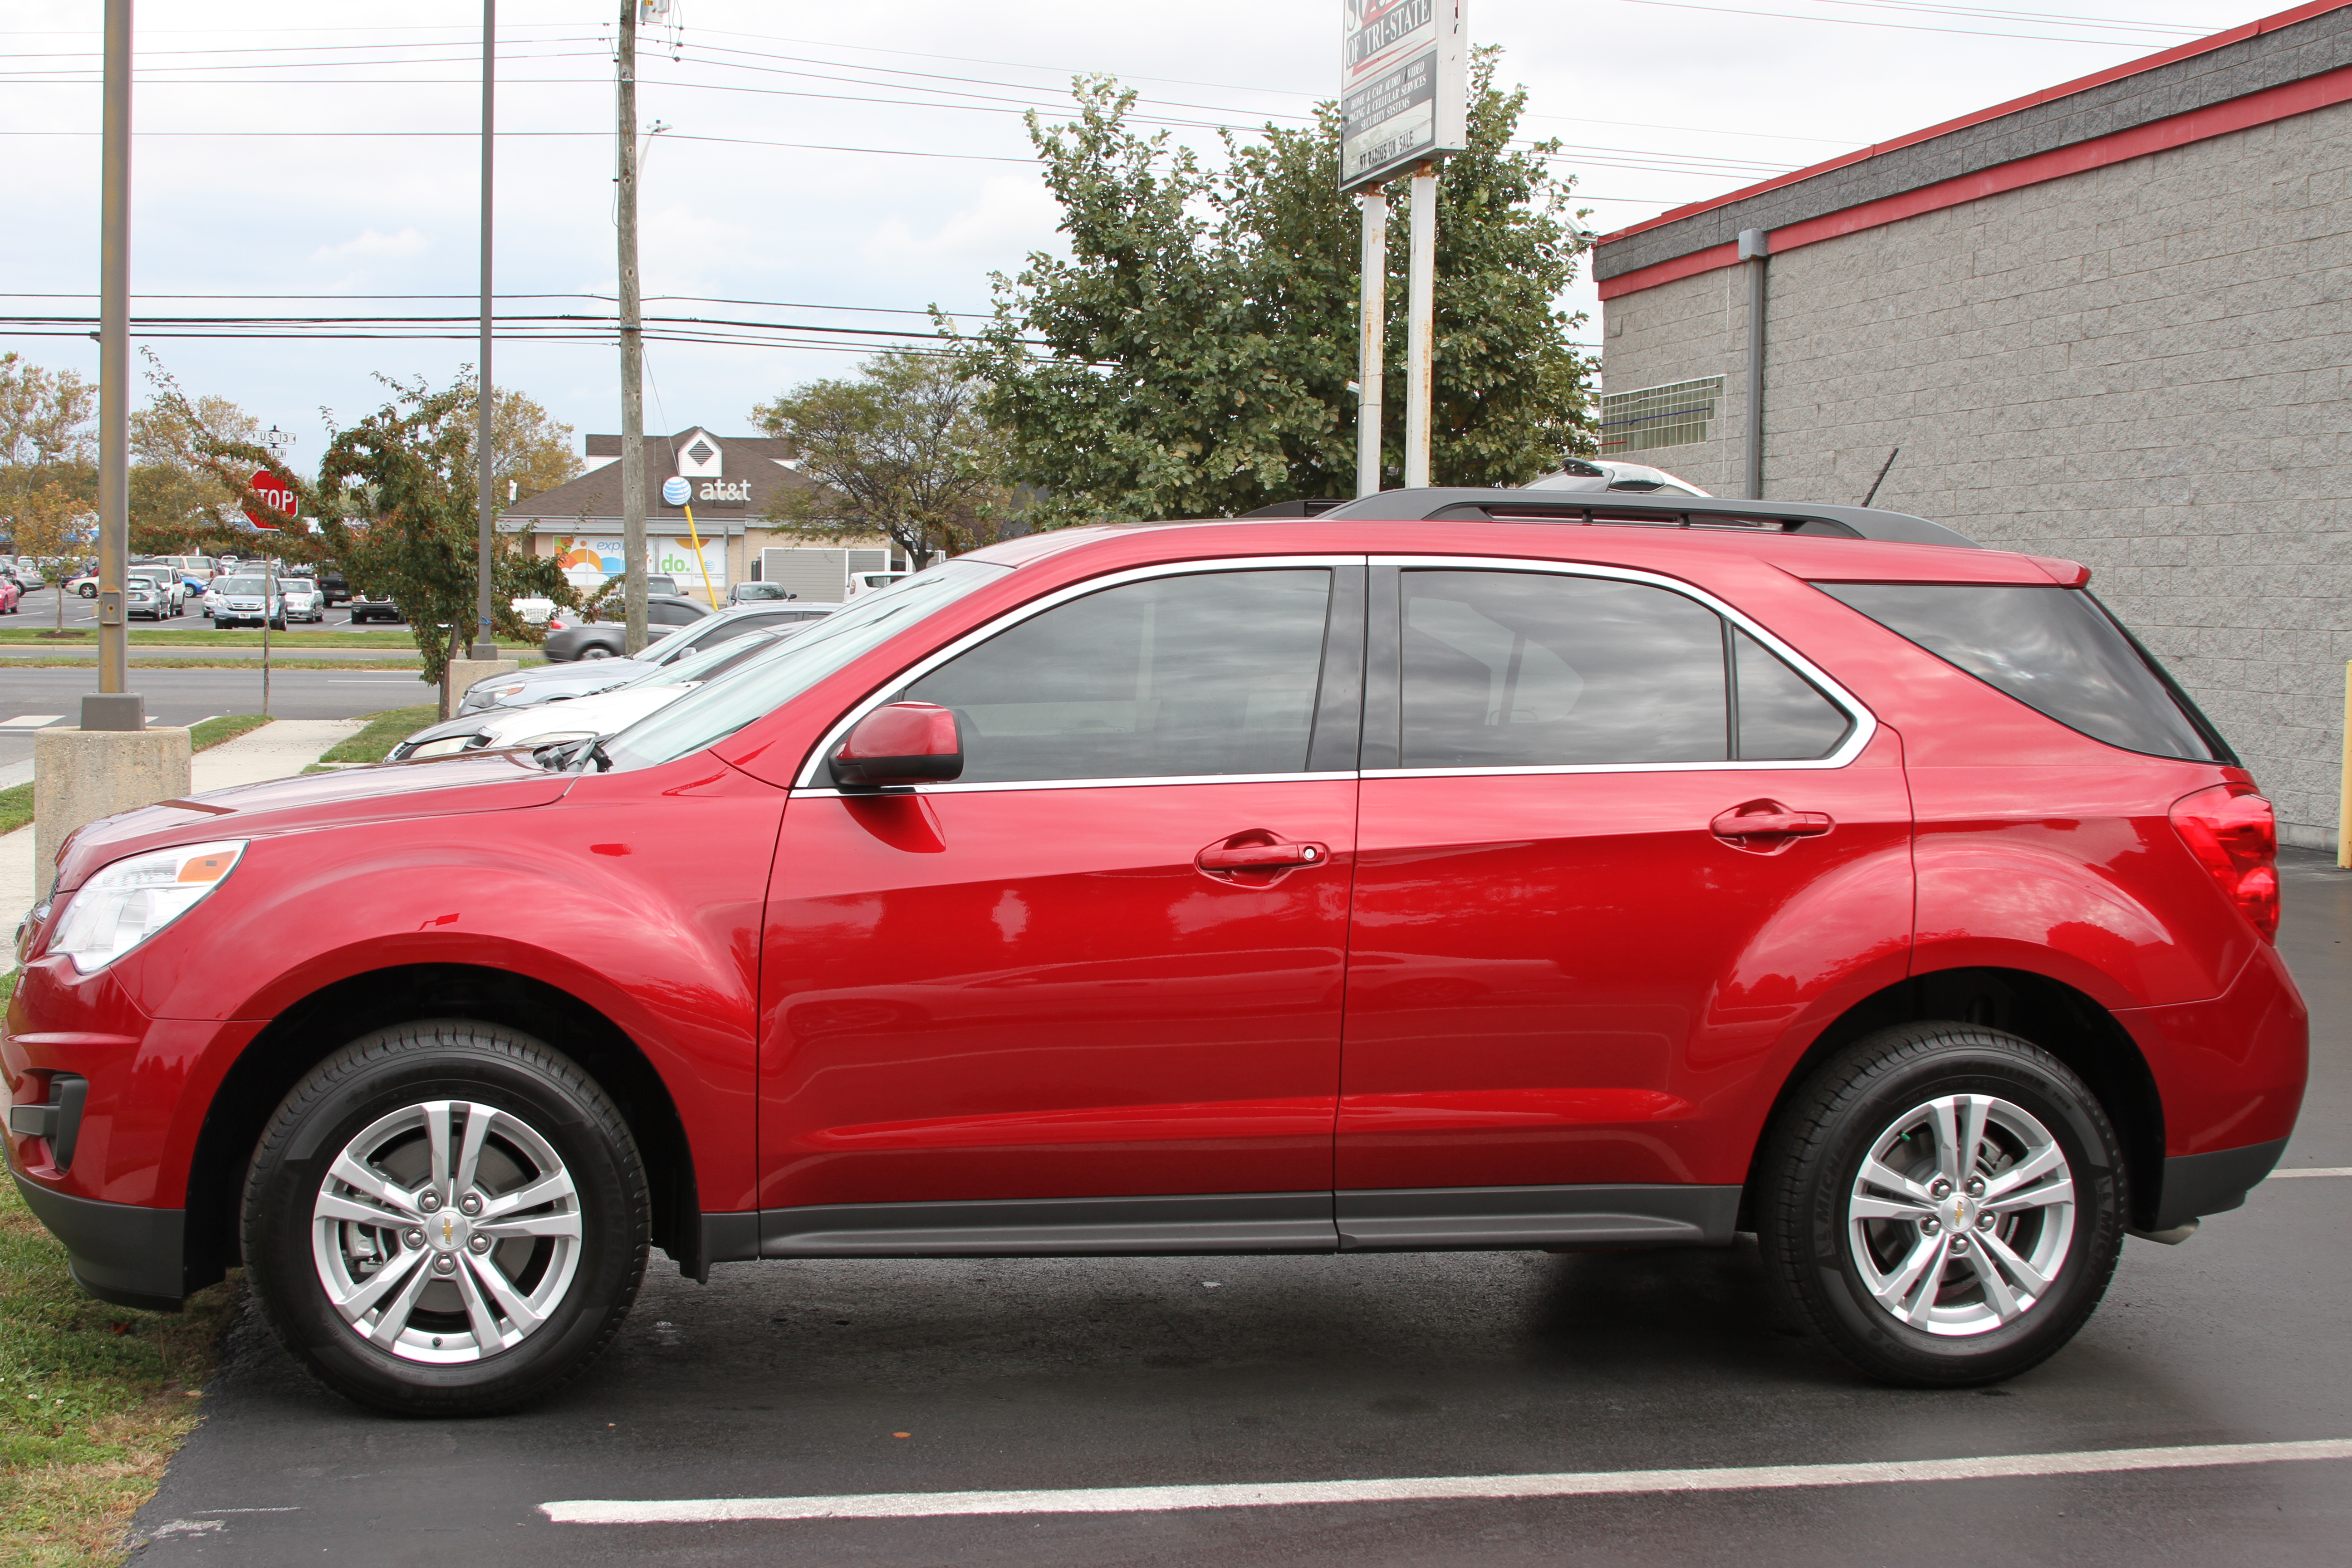 2013 Chevy Cruze Tire Size >> 2012 Chevy Equinox Tire Size - 2018 - 2019 New Car Reviews by girlcodemovement